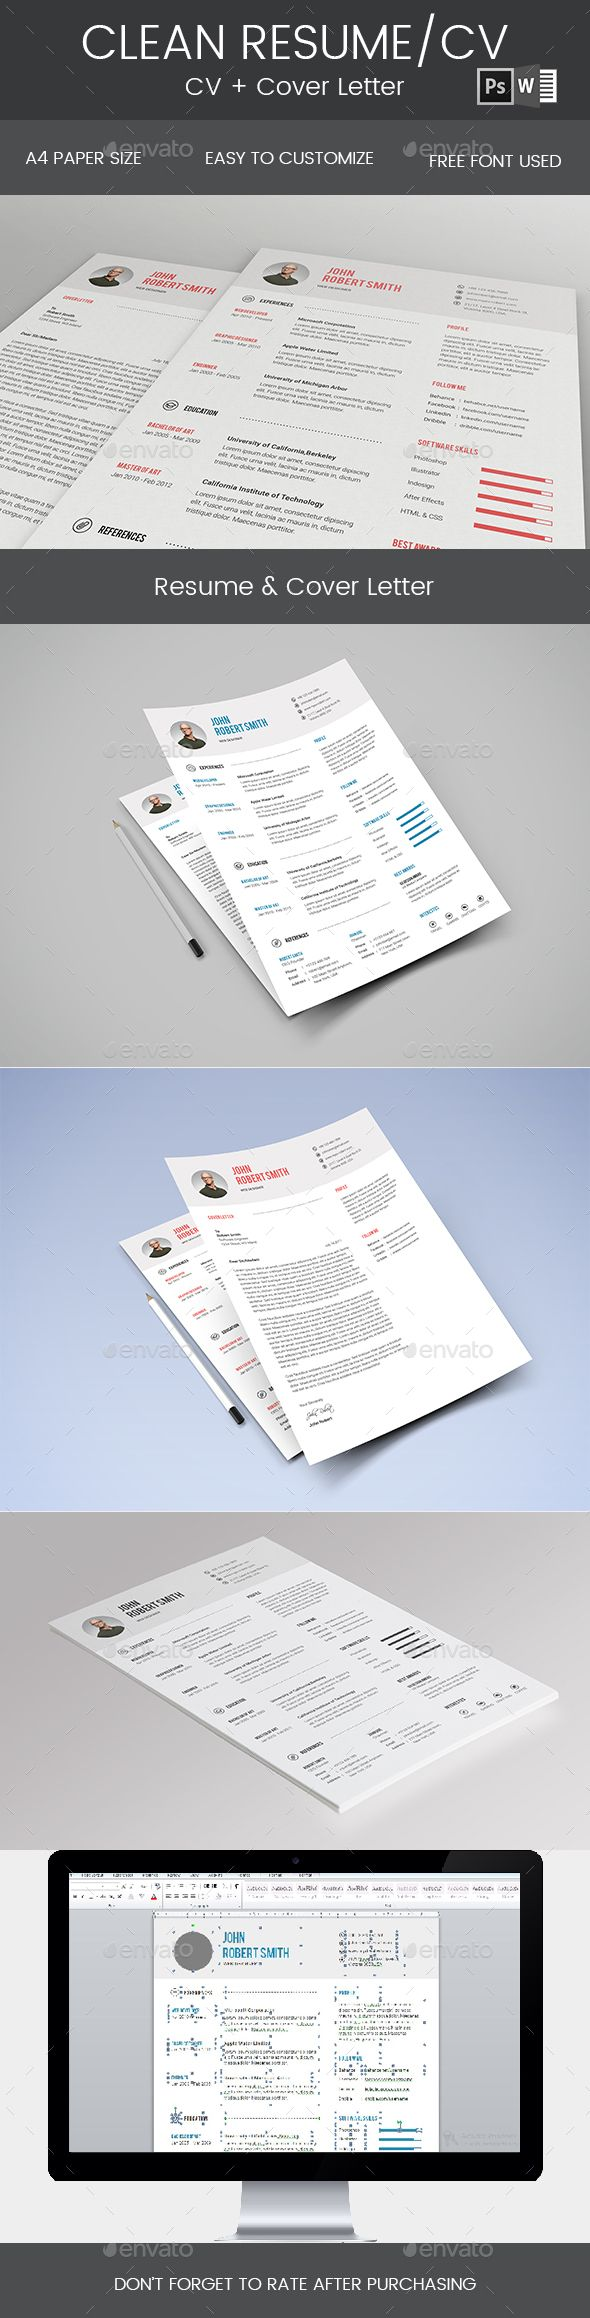 Clean Resume u0026 Cover Letter 1534 best